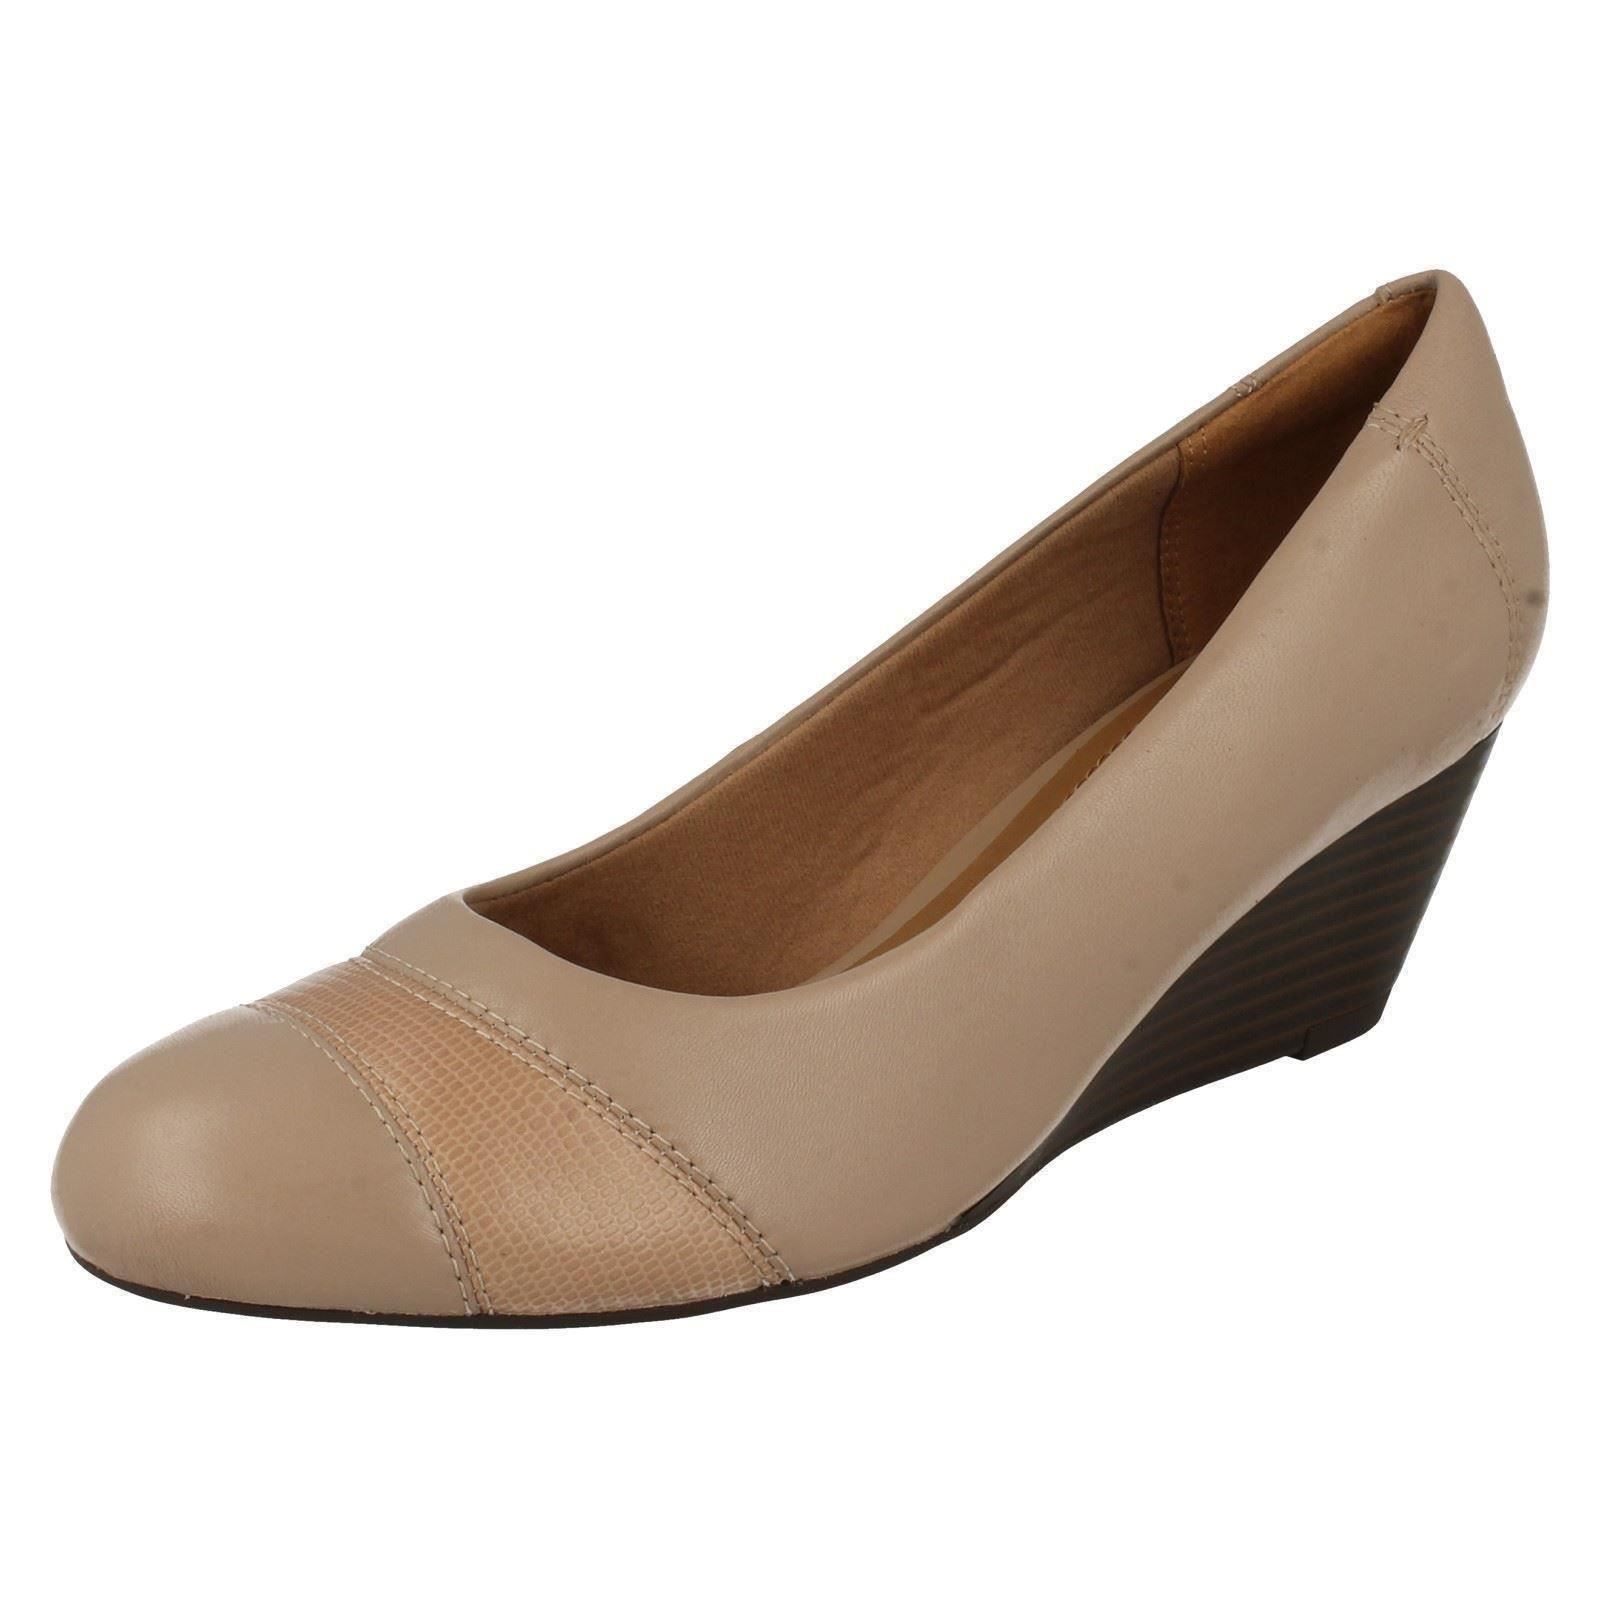 Femmes Femmes Femmes Clarks Wedge Shoes Brielle Tacha 6674f3